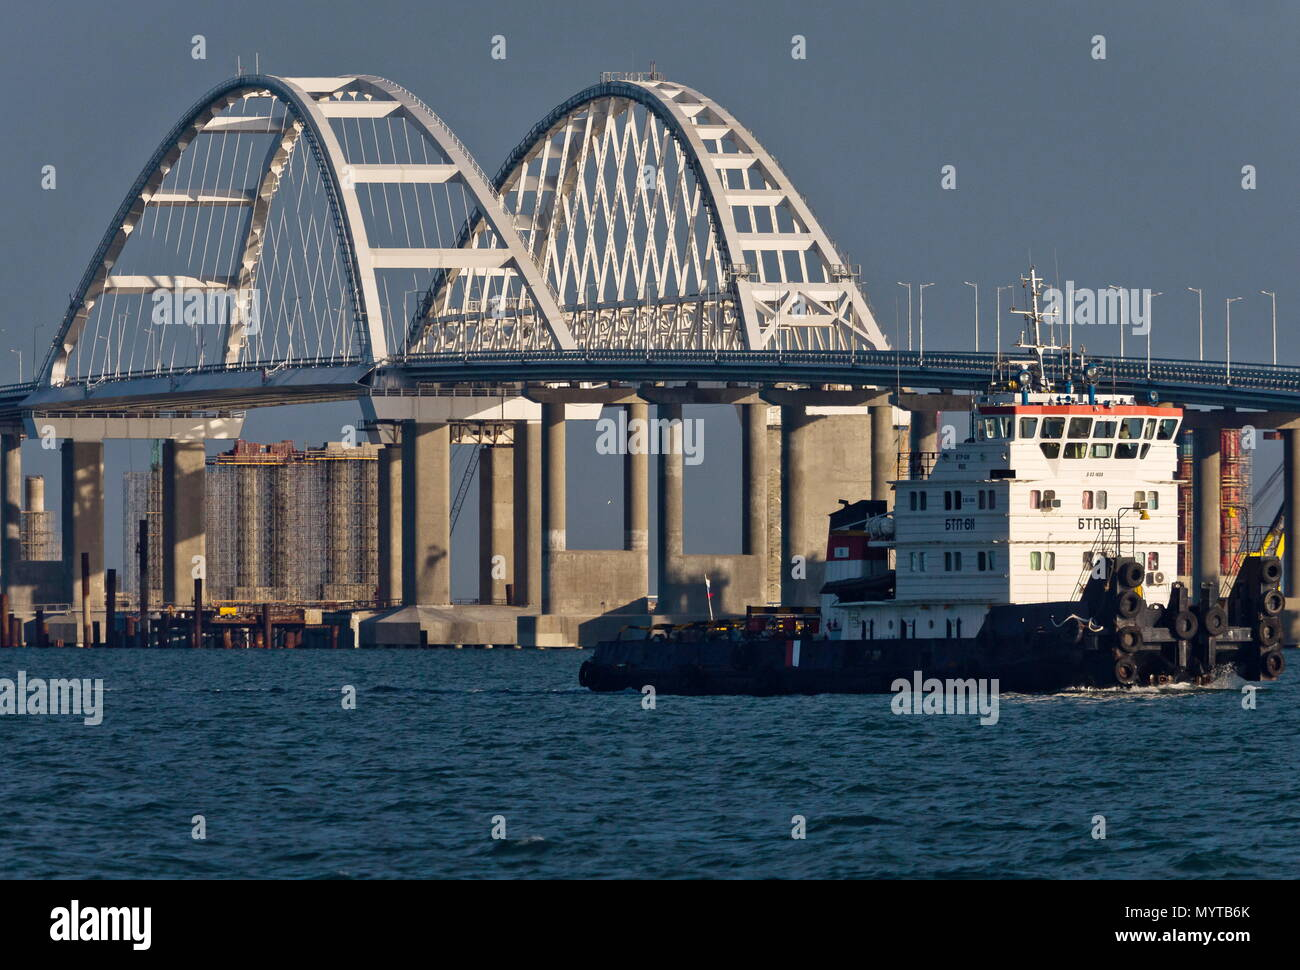 In 2018 Kerch Bridge to the Crimea will be erected 70